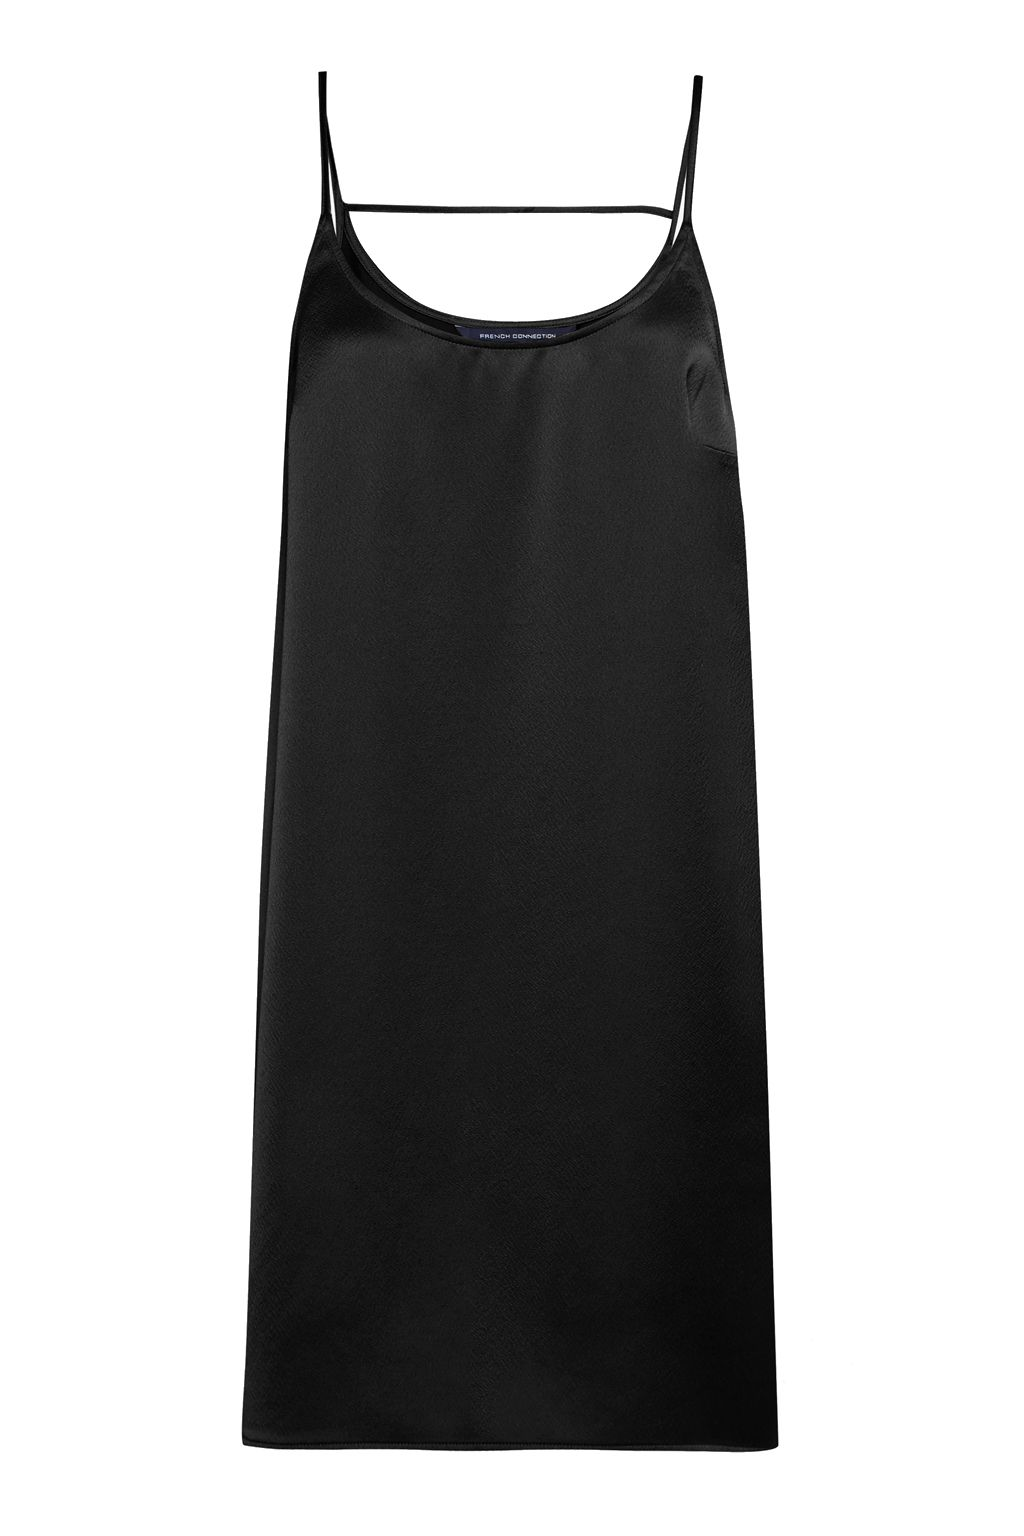 French Connection Sasha Satin Slip Dress, Black